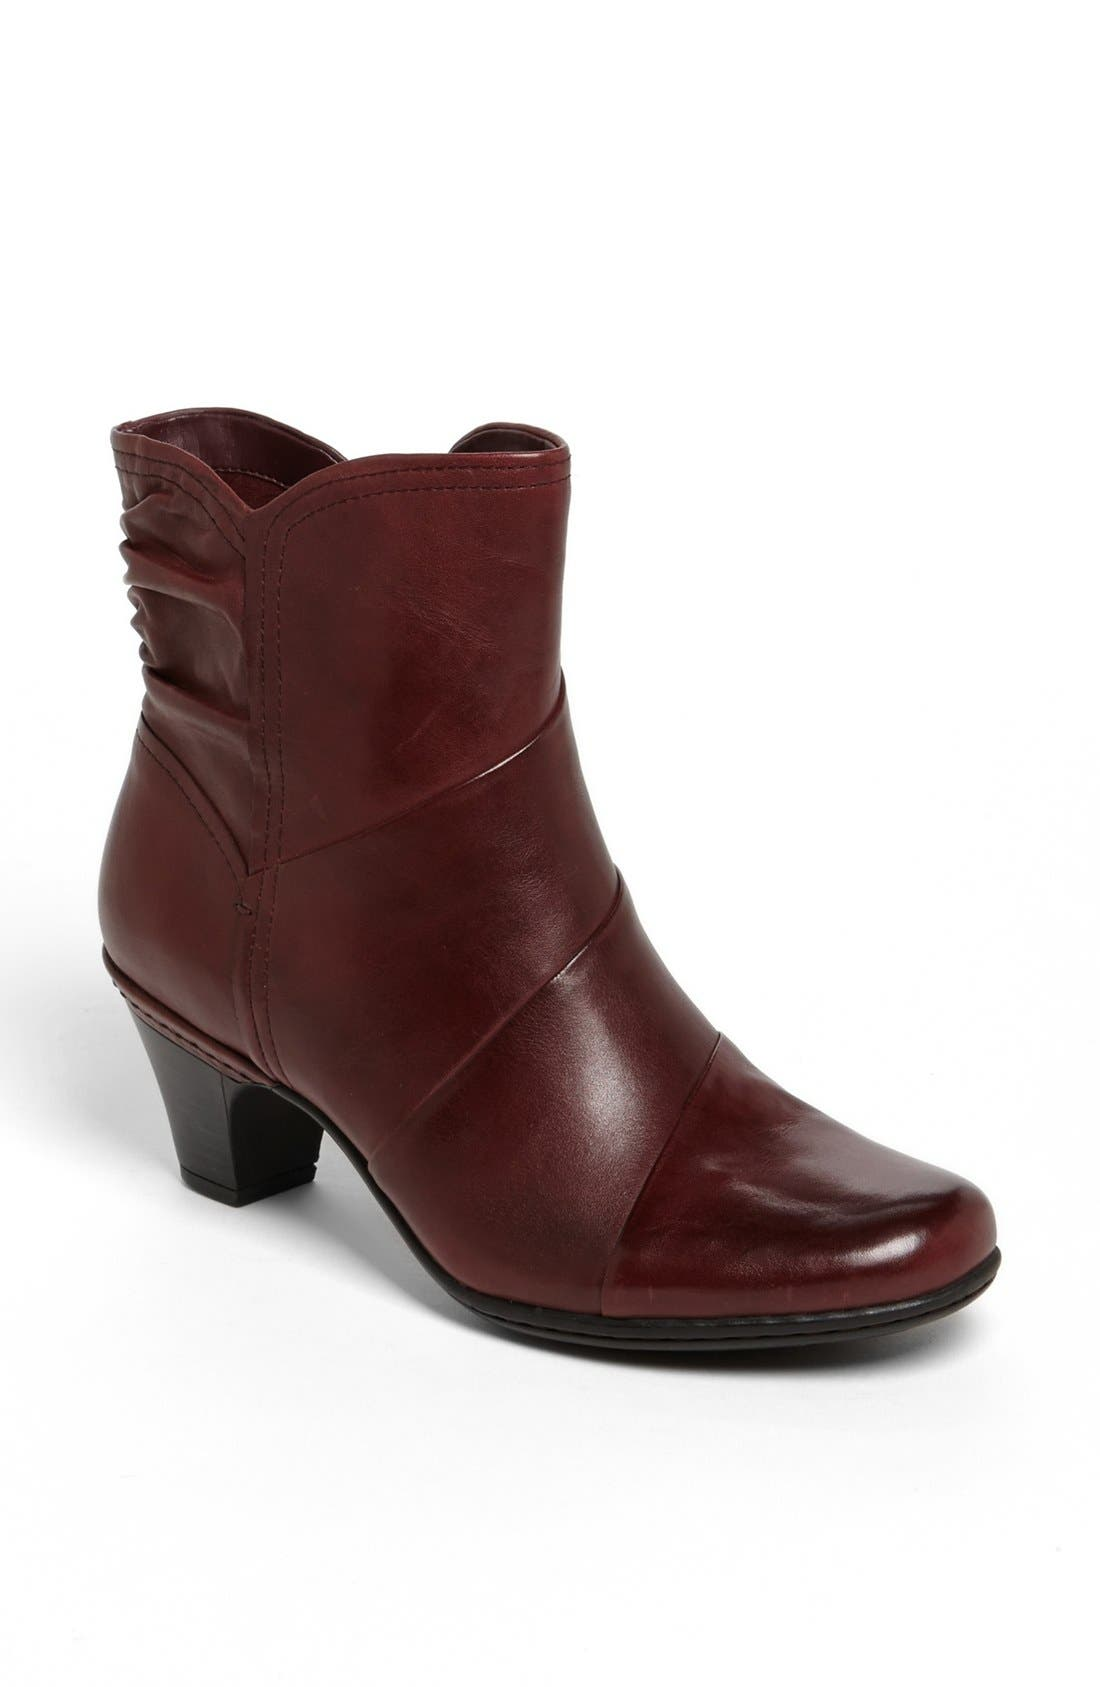 Main Image - Cobb Hill 'Sarah' Boot